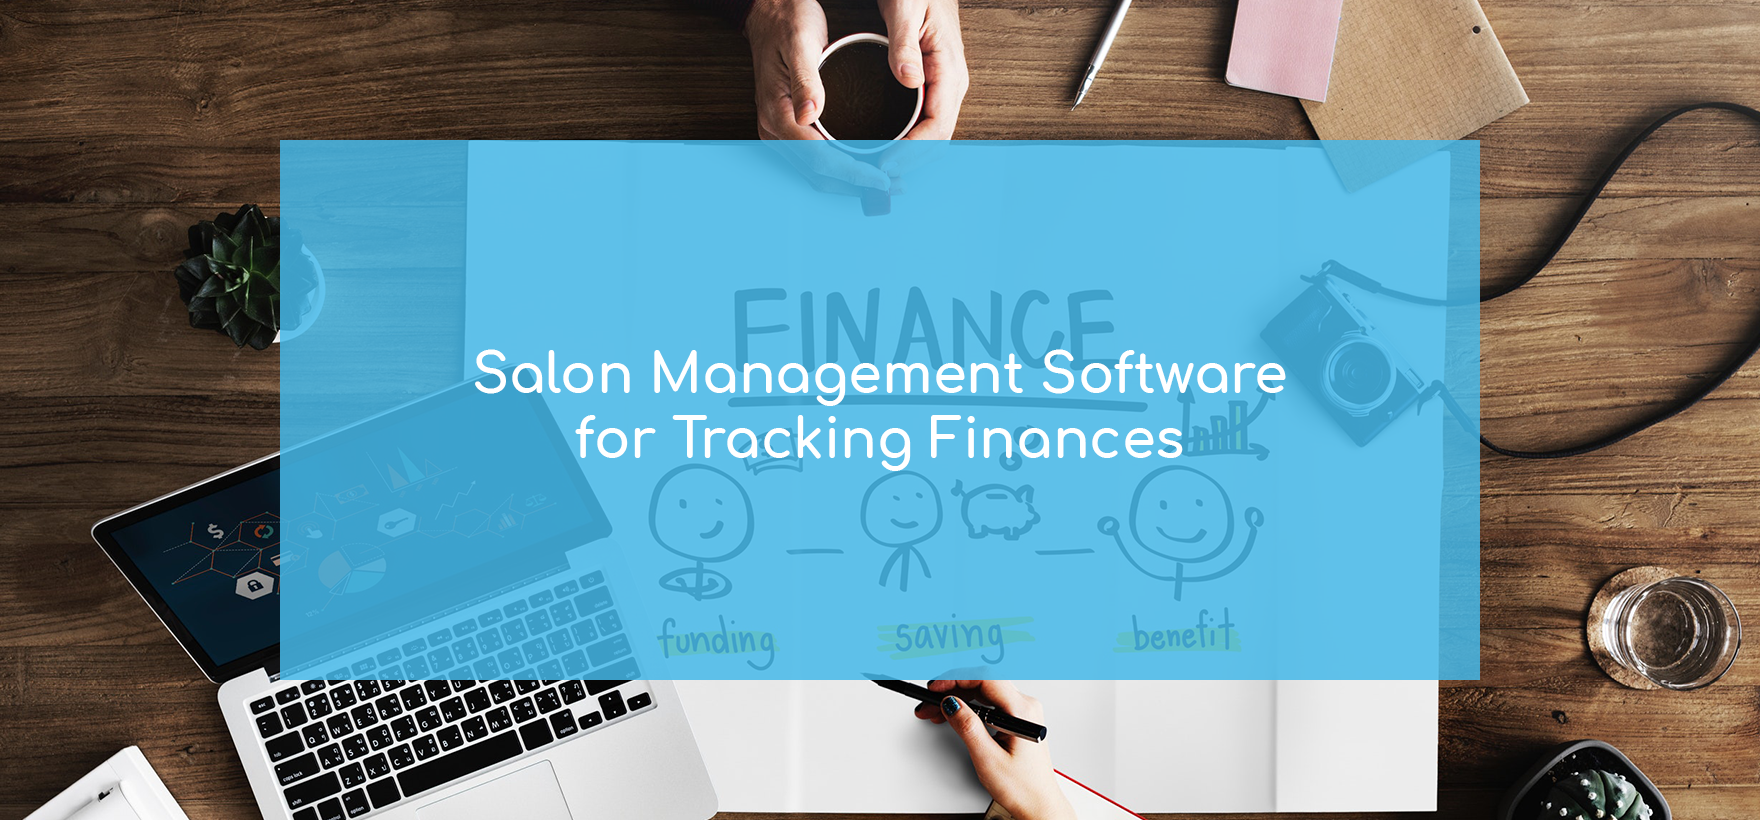 Beauty salon accounting. Smarter Beauty Business Accounting with Salon Management Software